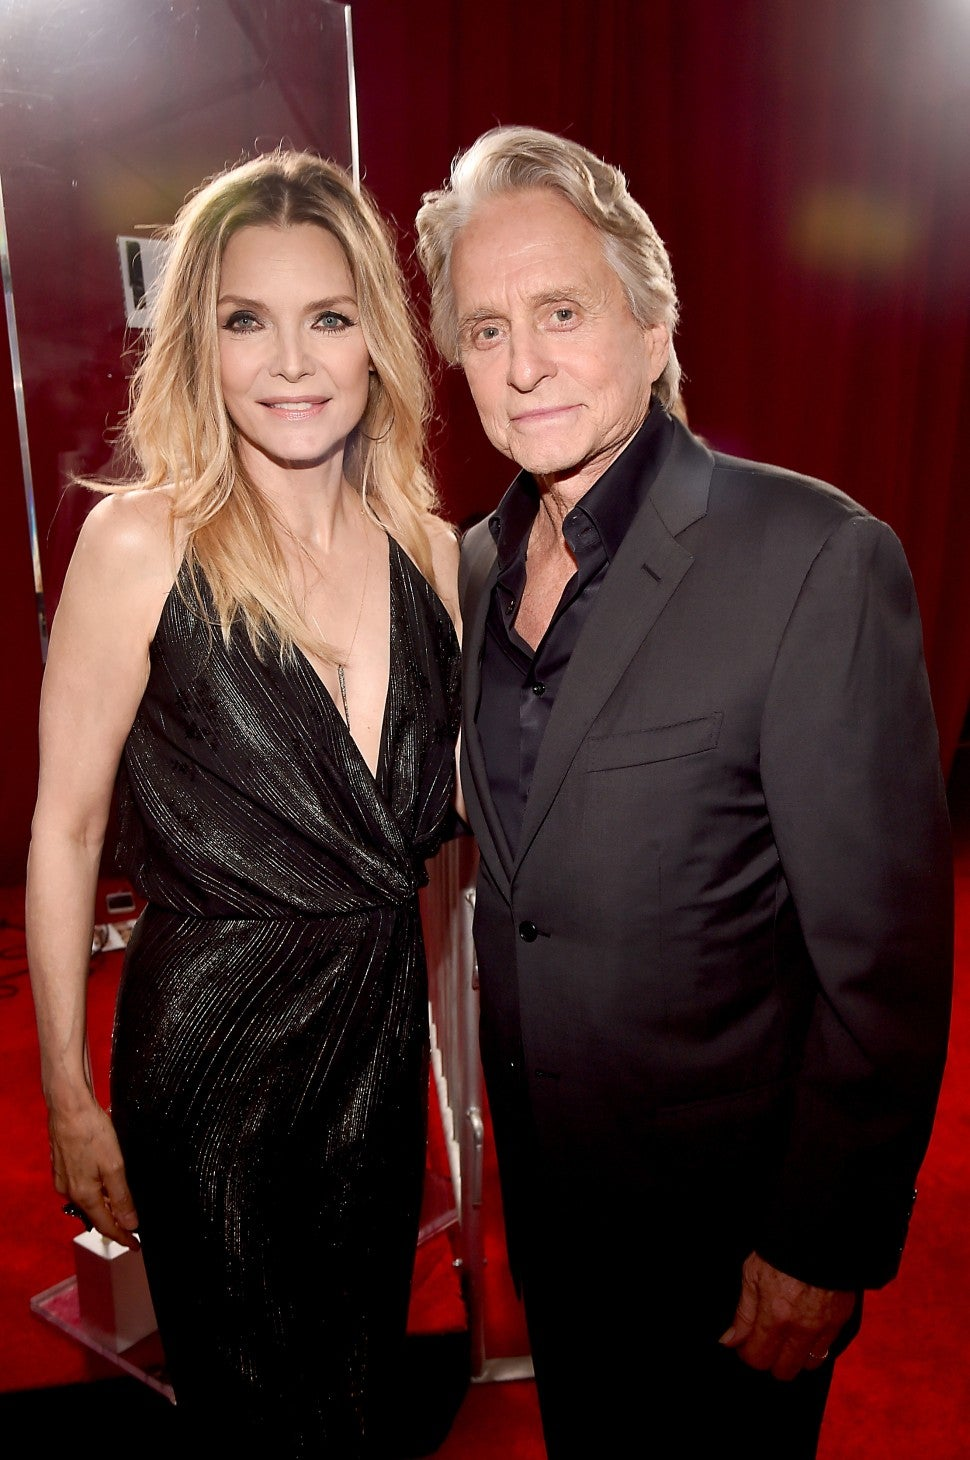 Michelle Pfeiffer and Michael Douglas at Ant-Man and the Wasp premiere